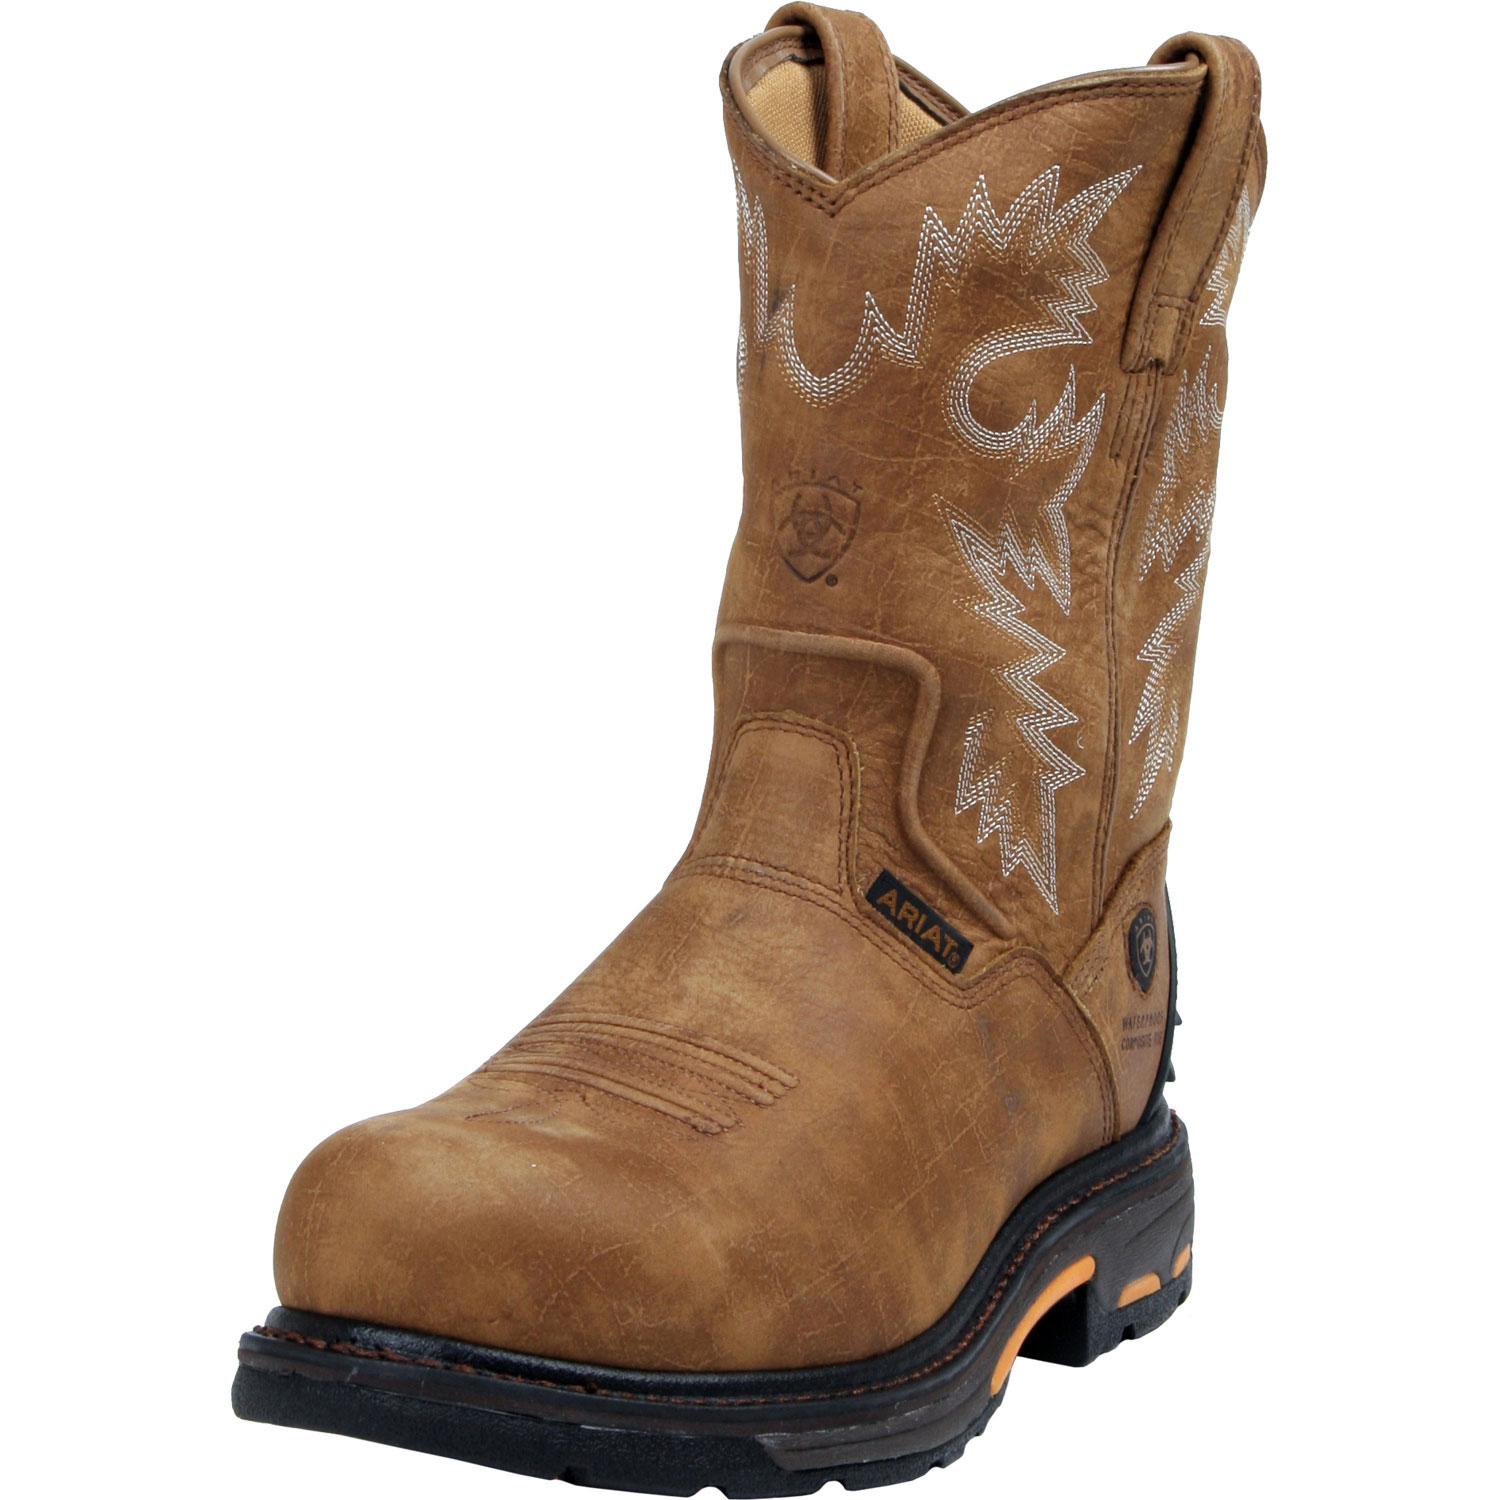 Ariat Pull On Work Boots Coltford Boots